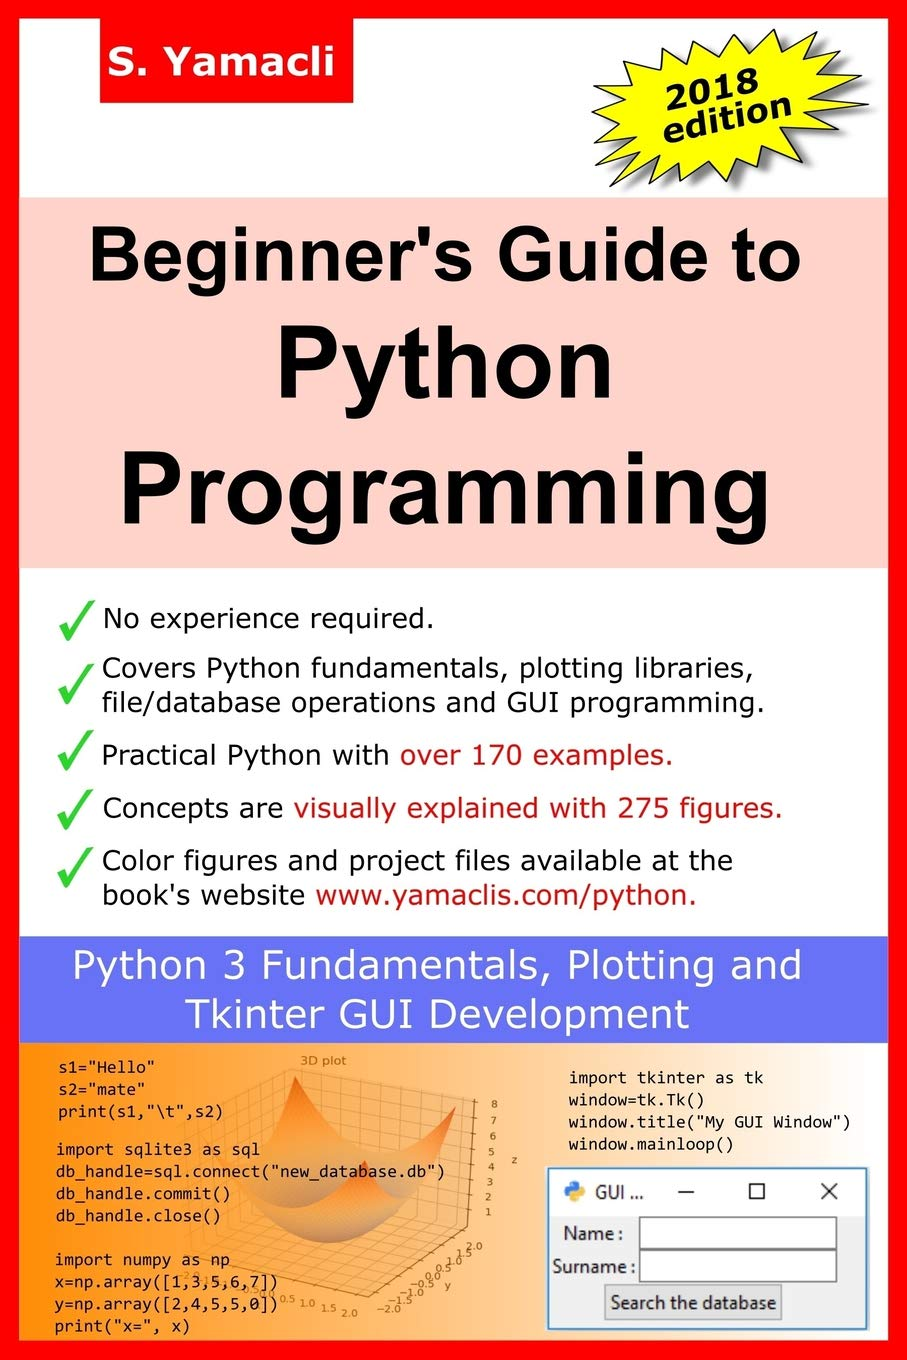 Beginner's Guide to Python Programming: Learn Python 3